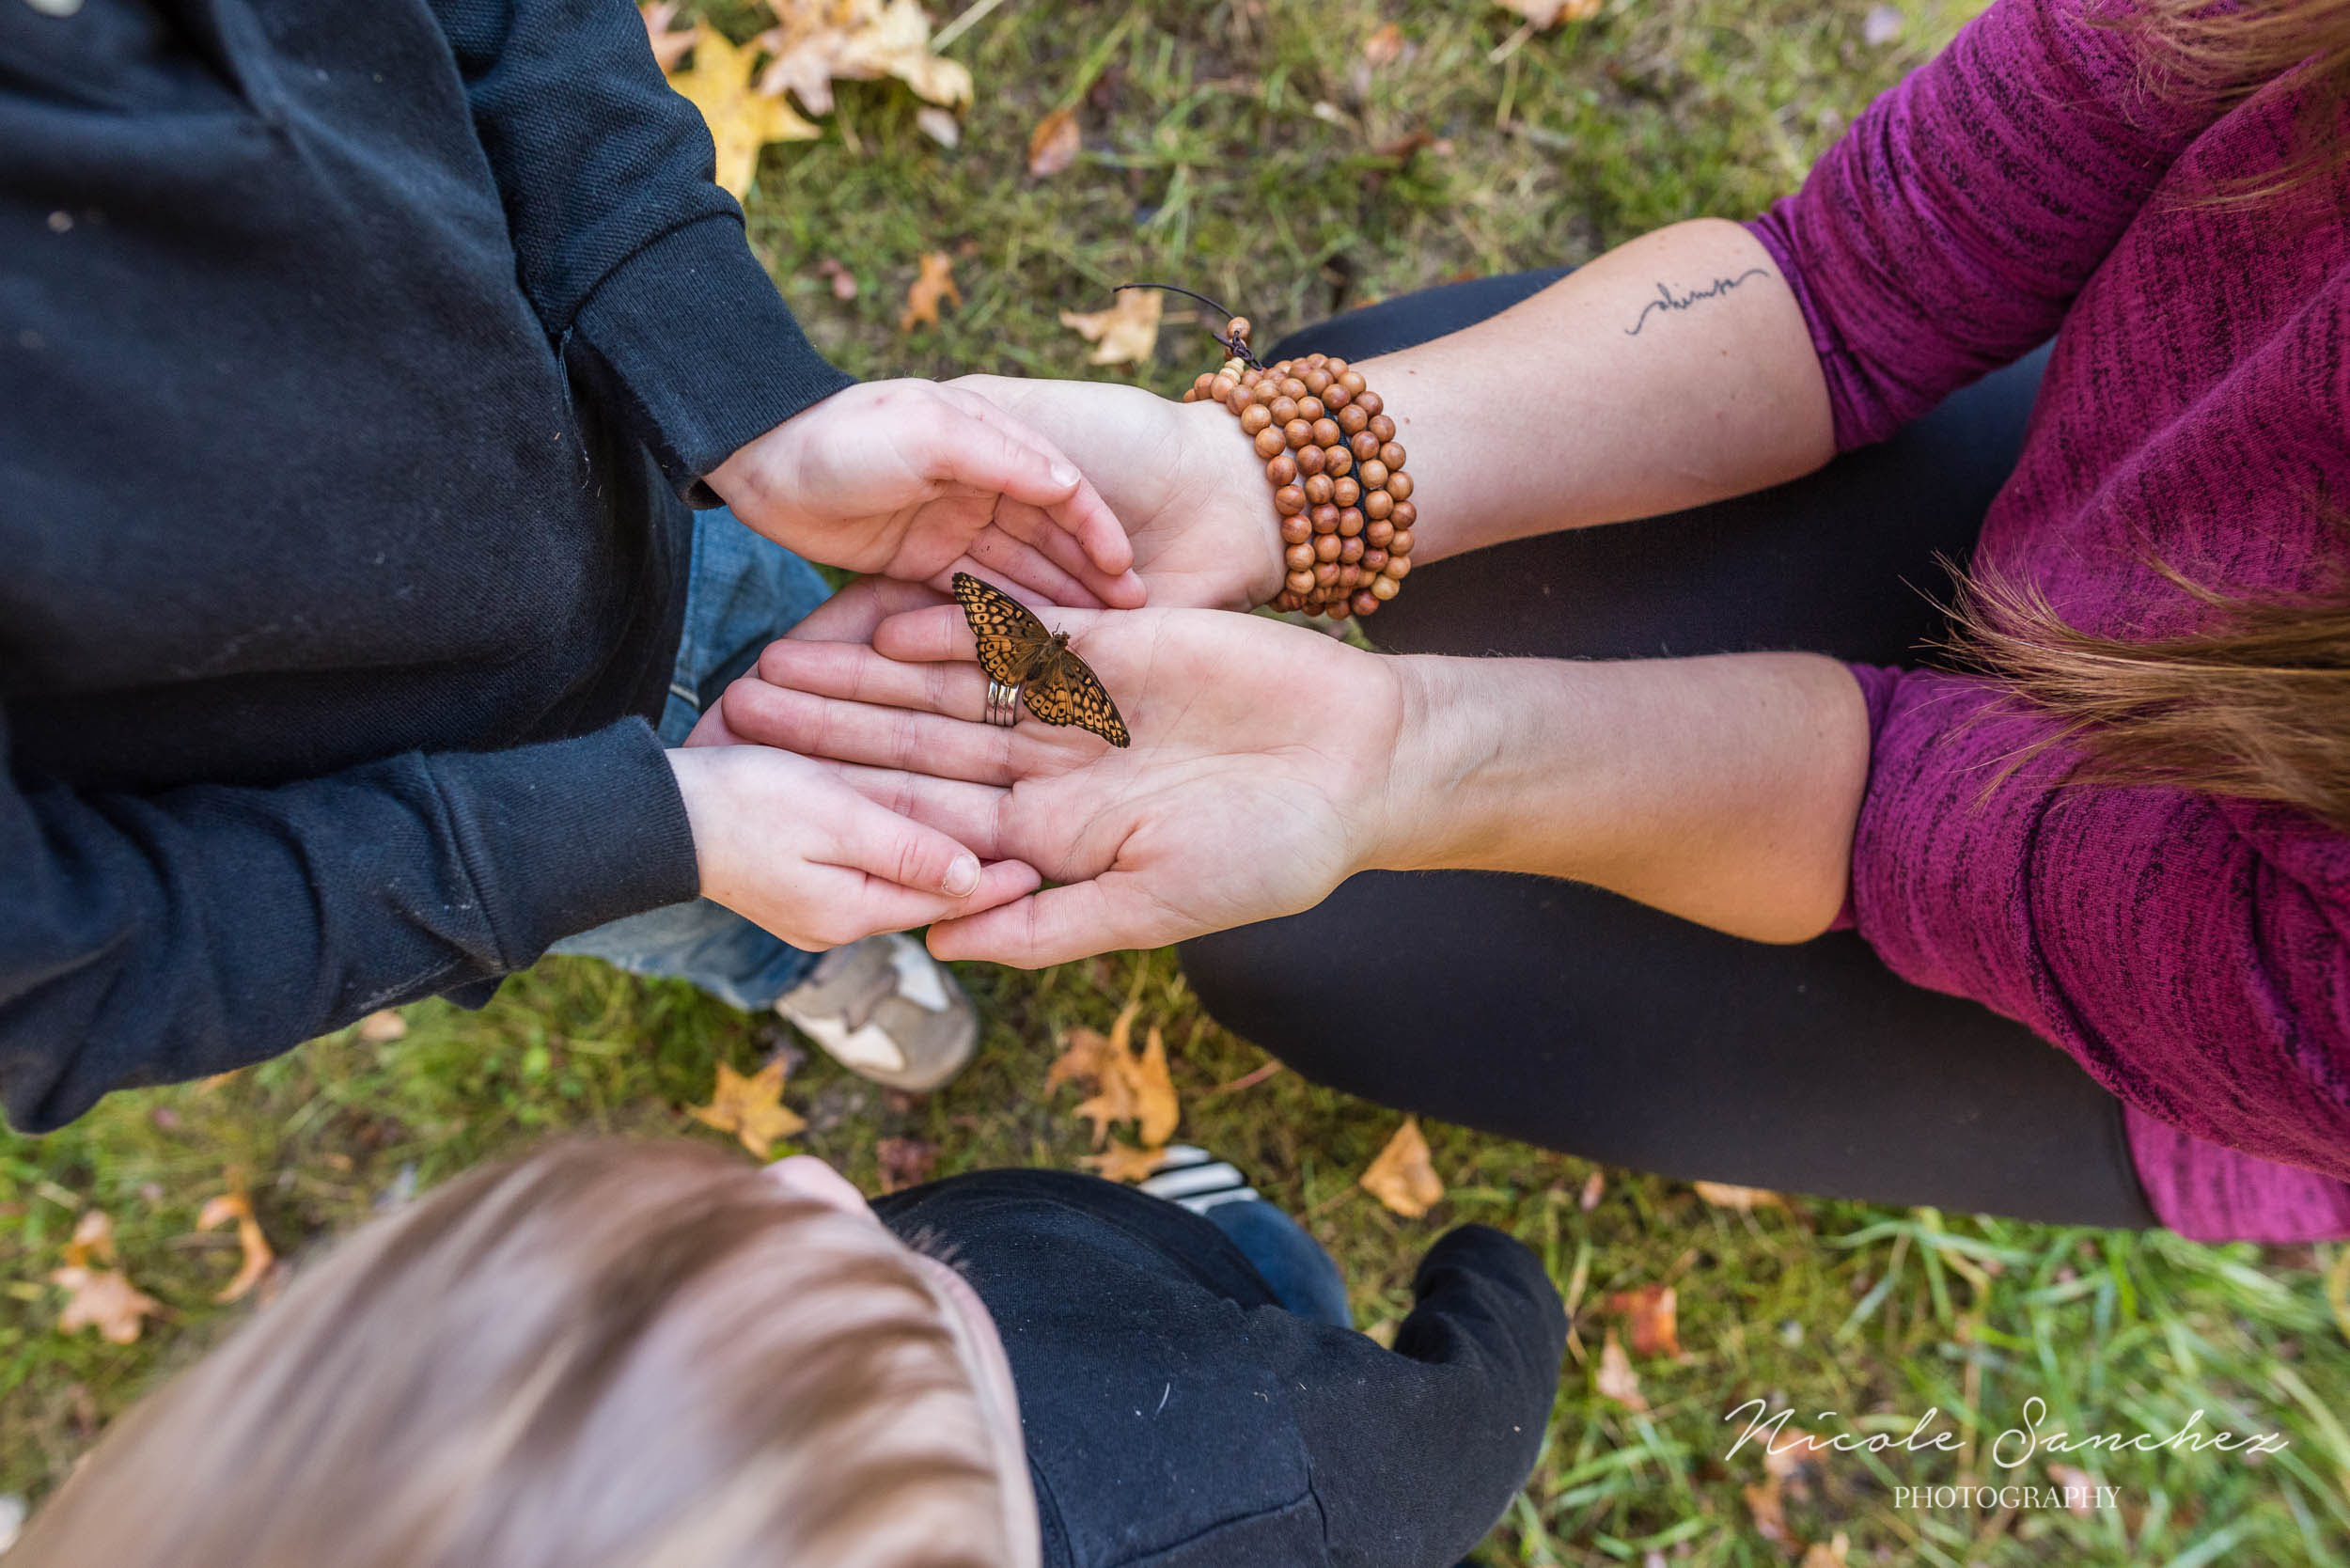 Mom and son holding butterfly at outdoor family session in Northern Virginia by Documentary Photographer Nicole Sanchez